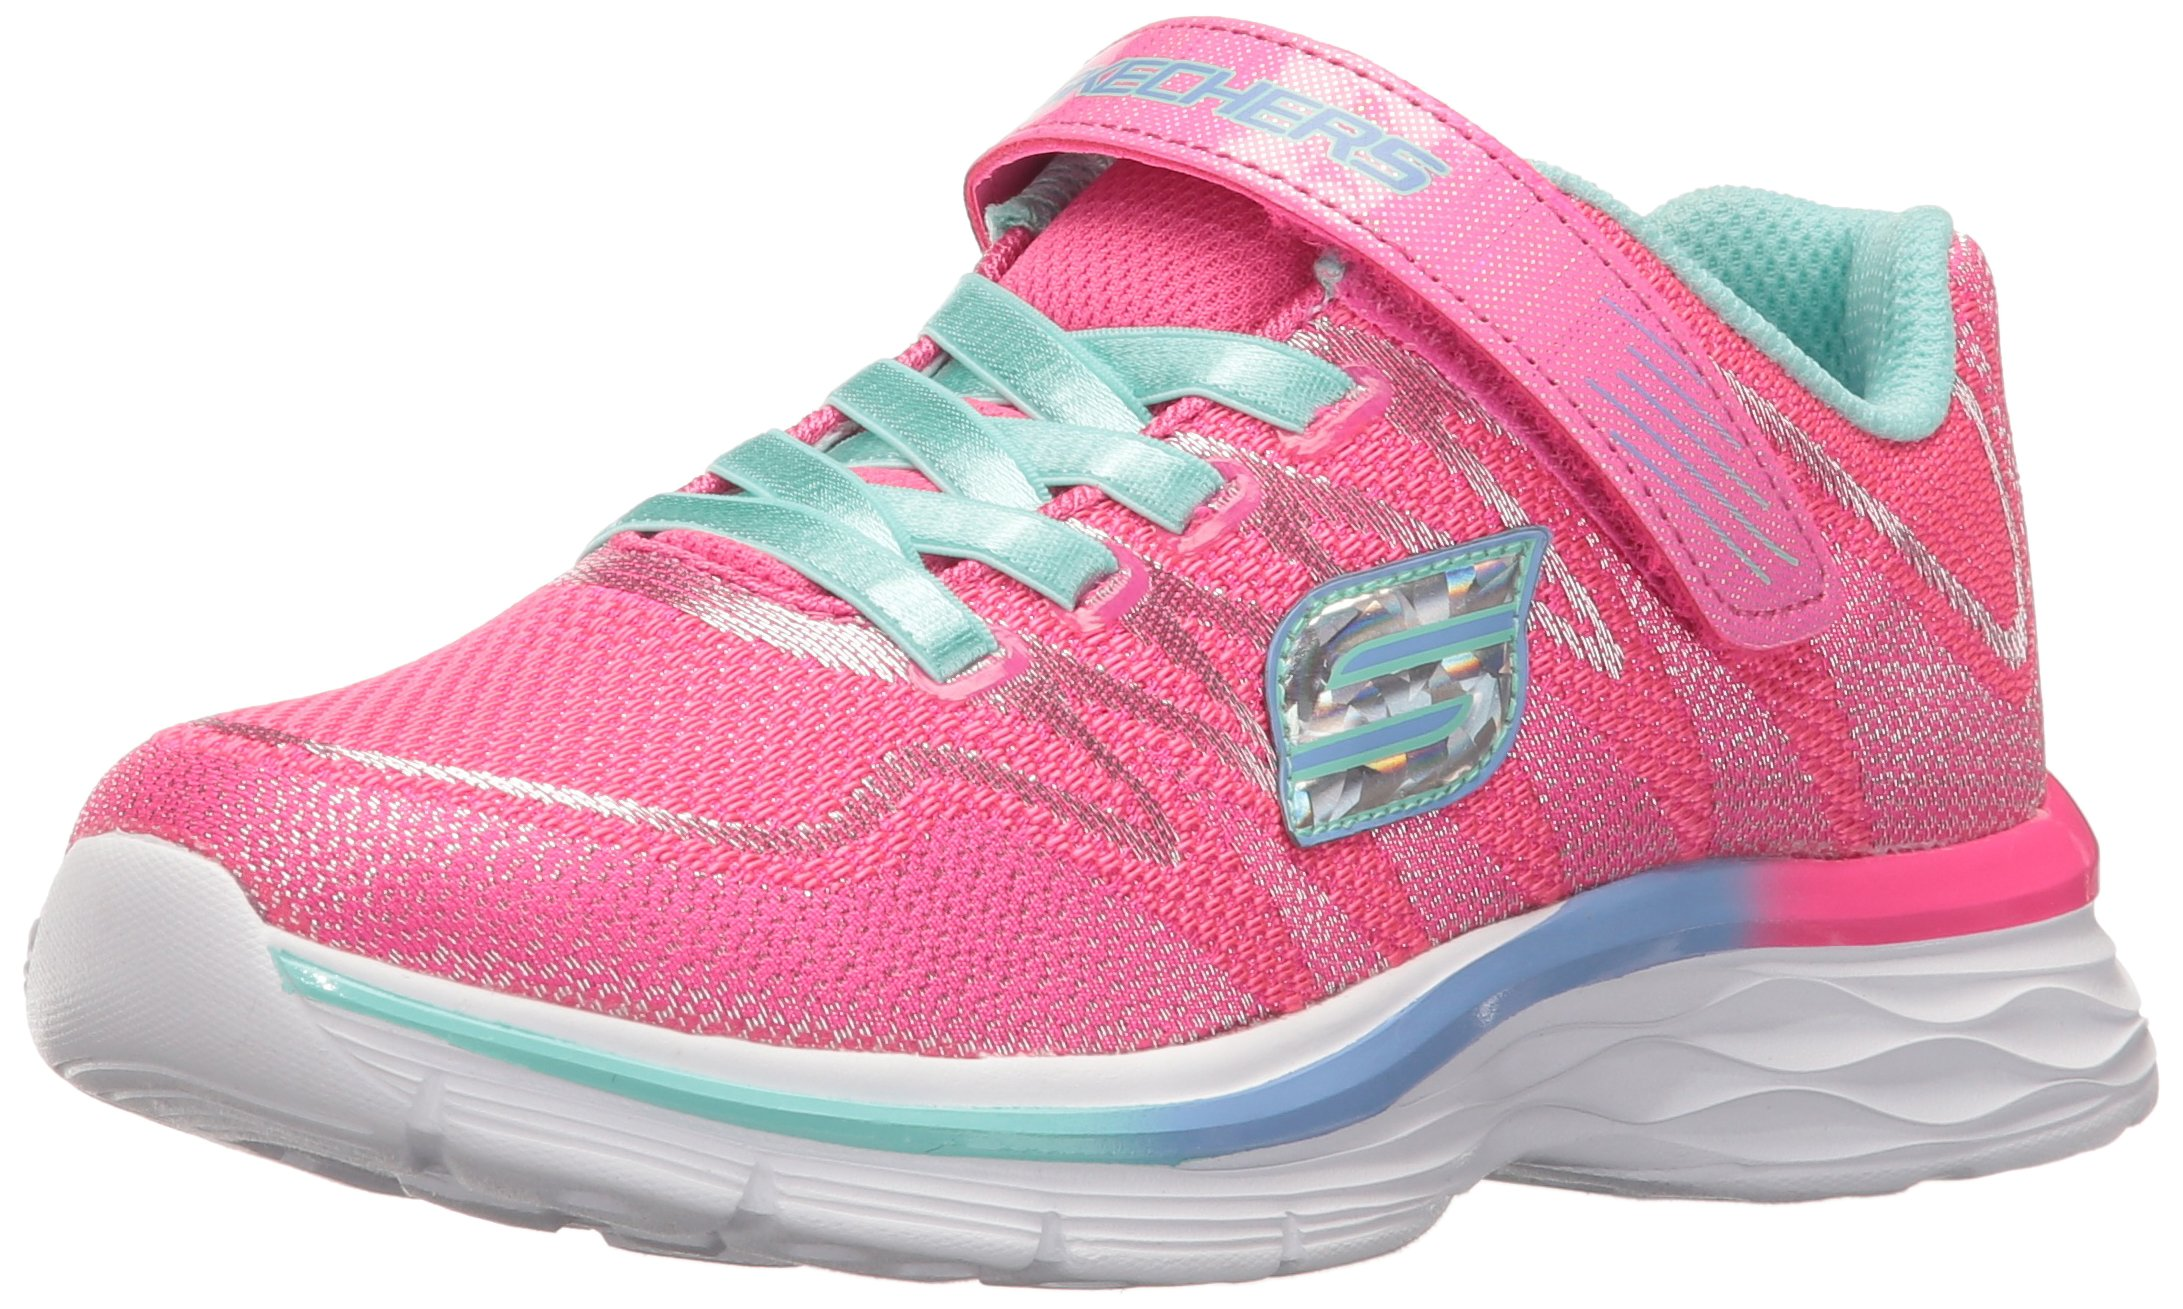 Skechers Kids Girls' Dream N'dash-Whimsy Sneaker,Neon Pink/Aqua, 5 M US Big Kid